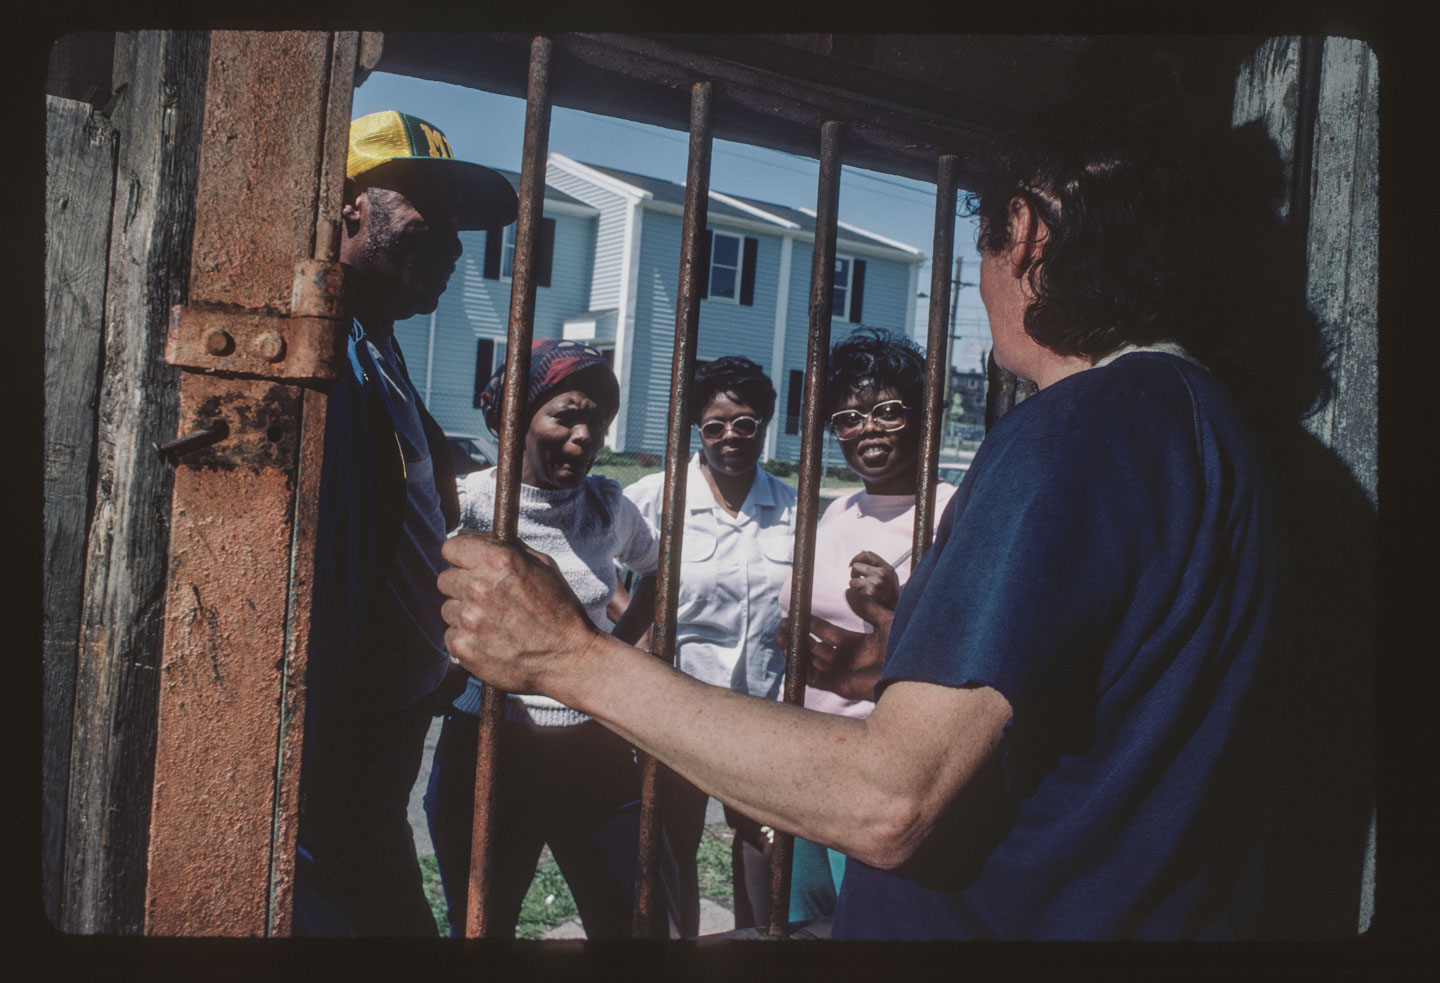 26-Kea speaking to visitors, Bergen St. at 14th Ave., Newark, 1987 .tif